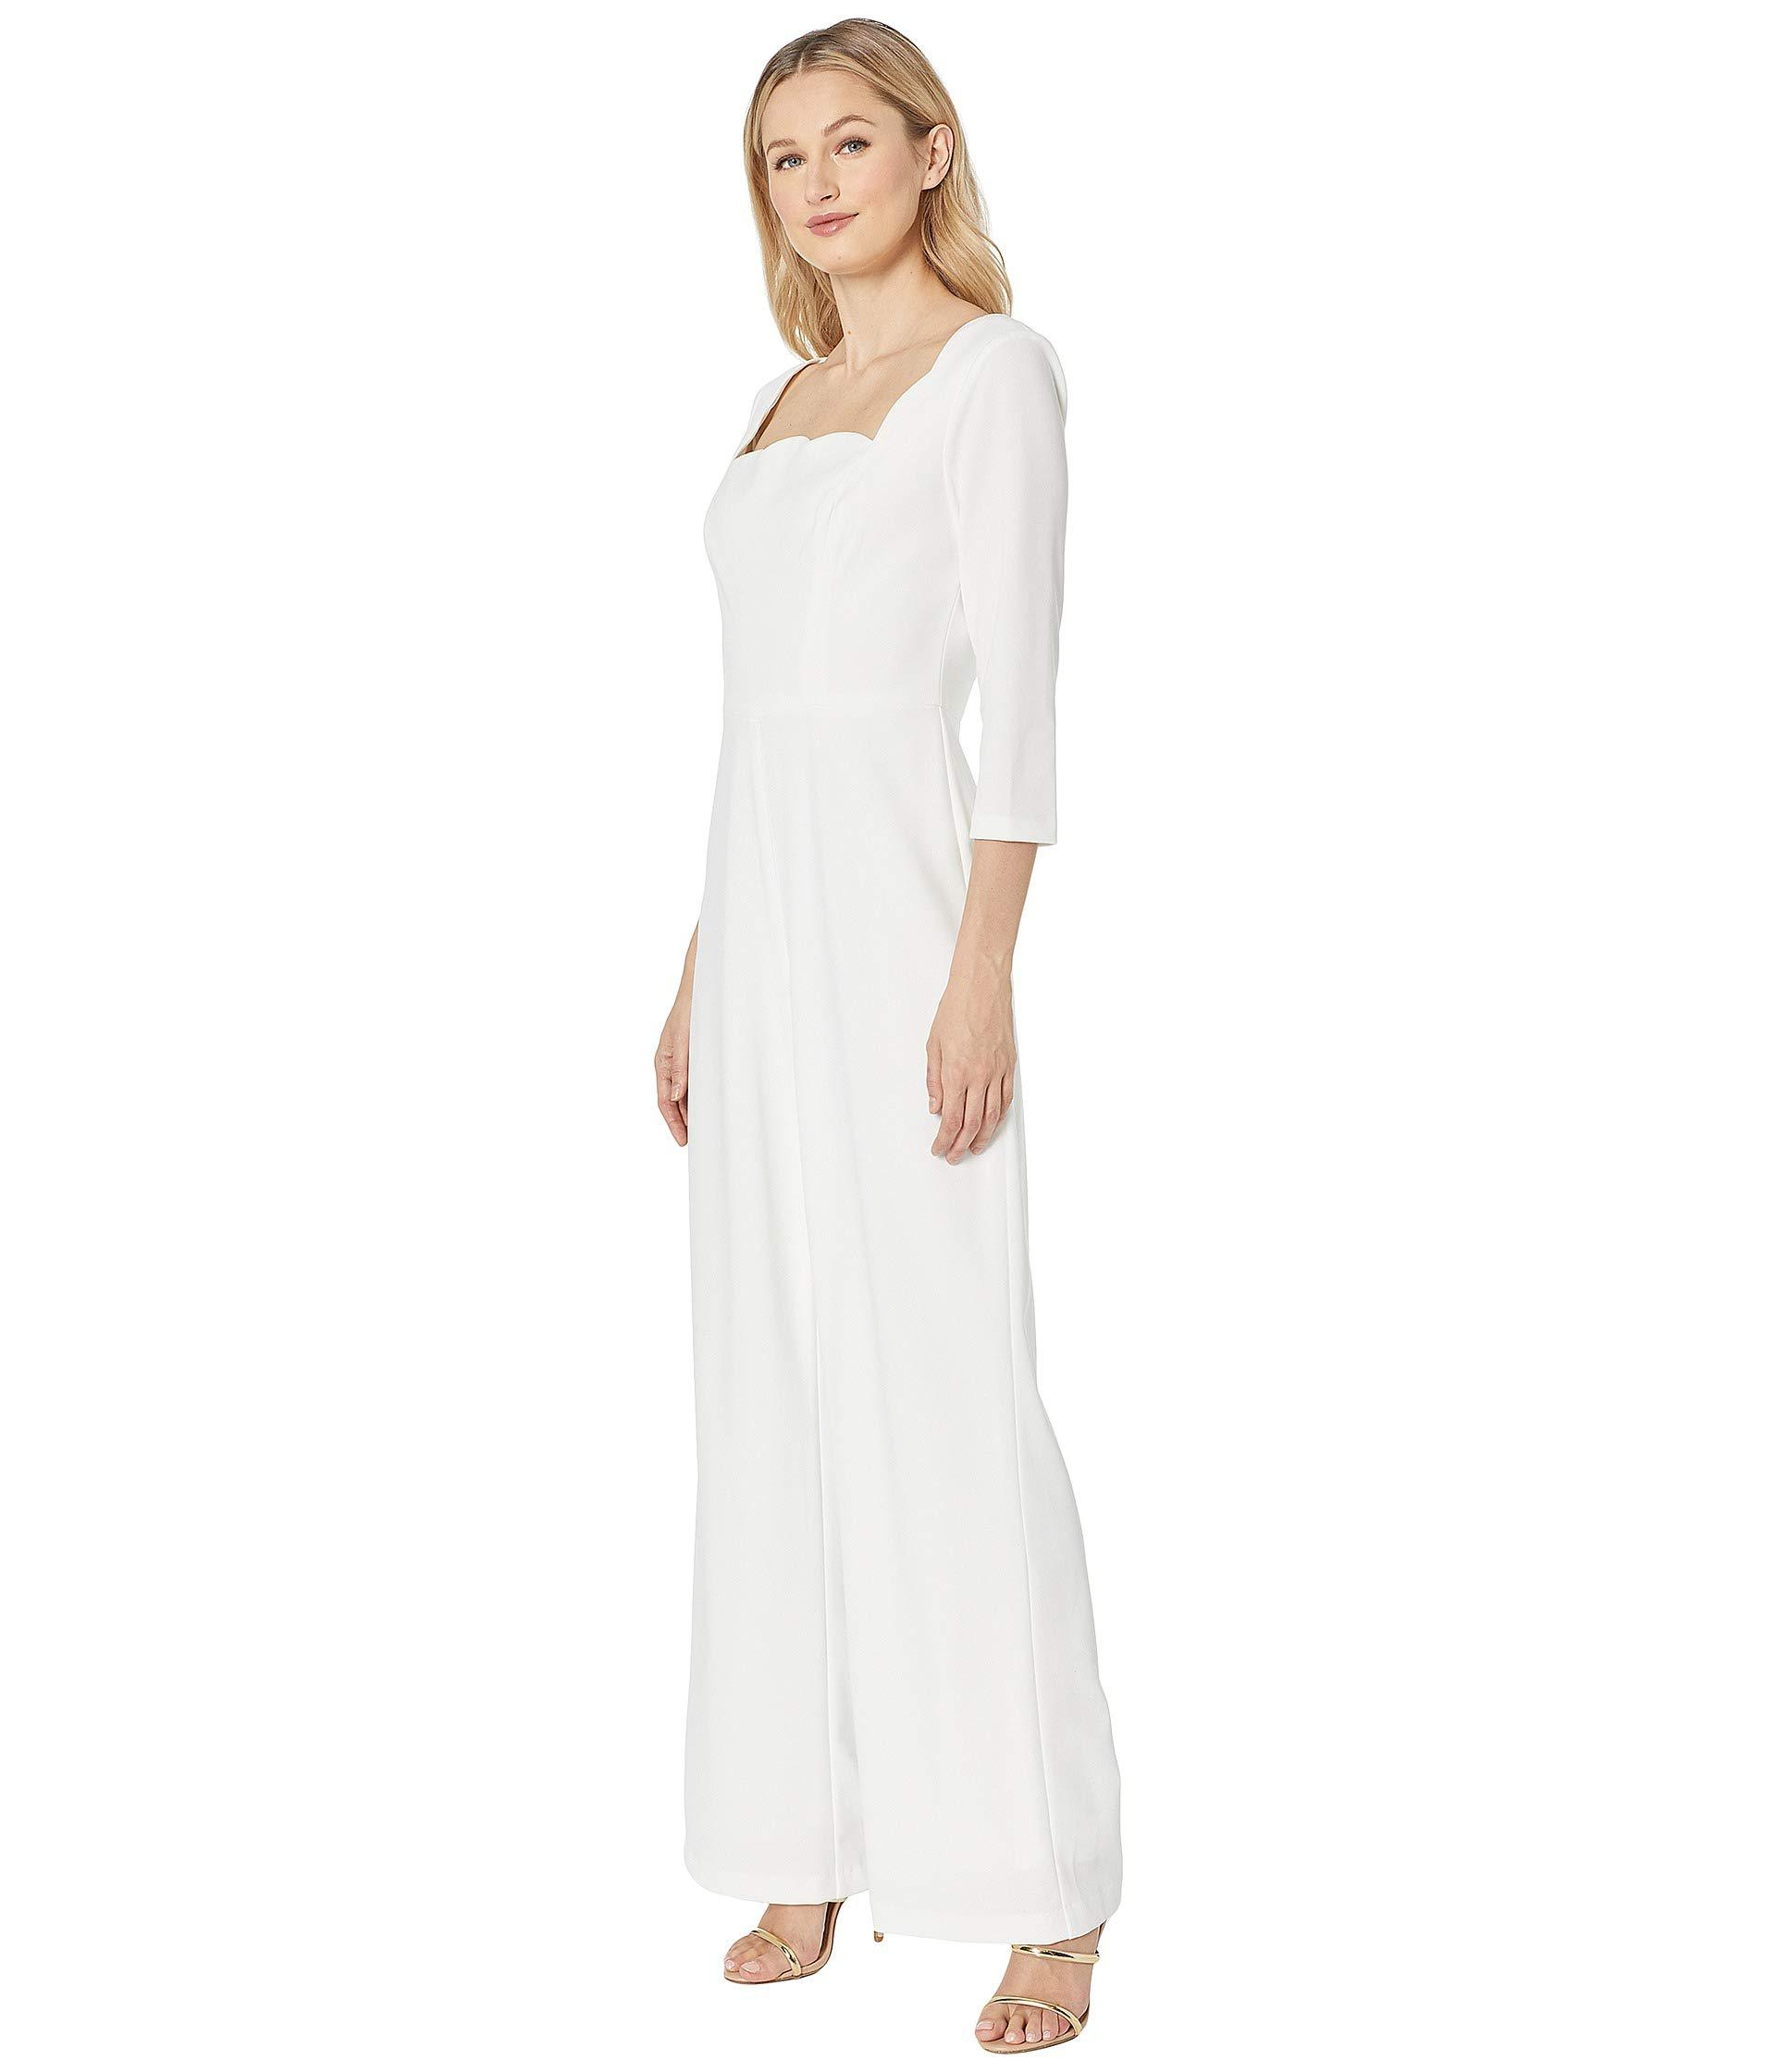 cd5b6ff462d1 Adrianna Papell Knit Crepe Scalloped Jumpsuit (ivory) Women's Jumpsuit &  Rompers One Piece in White - Lyst